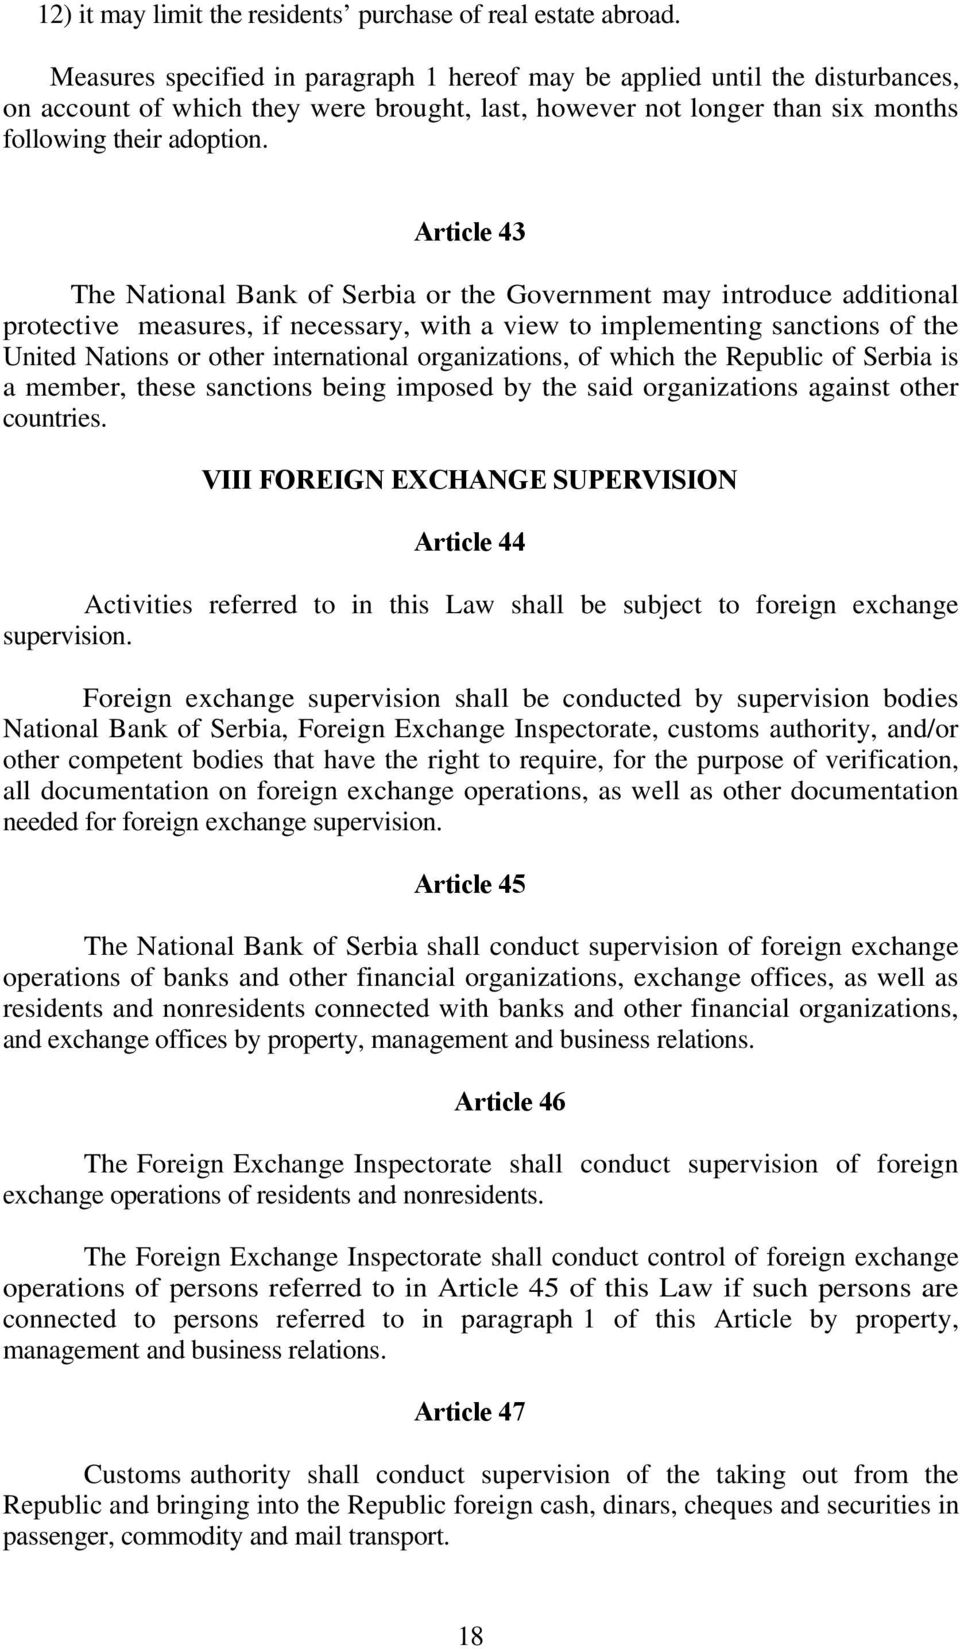 Article 43 The National Bank of Serbia or the Government may introduce additional protective measures, if necessary, with a view to implementing sanctions of the United Nations or other international